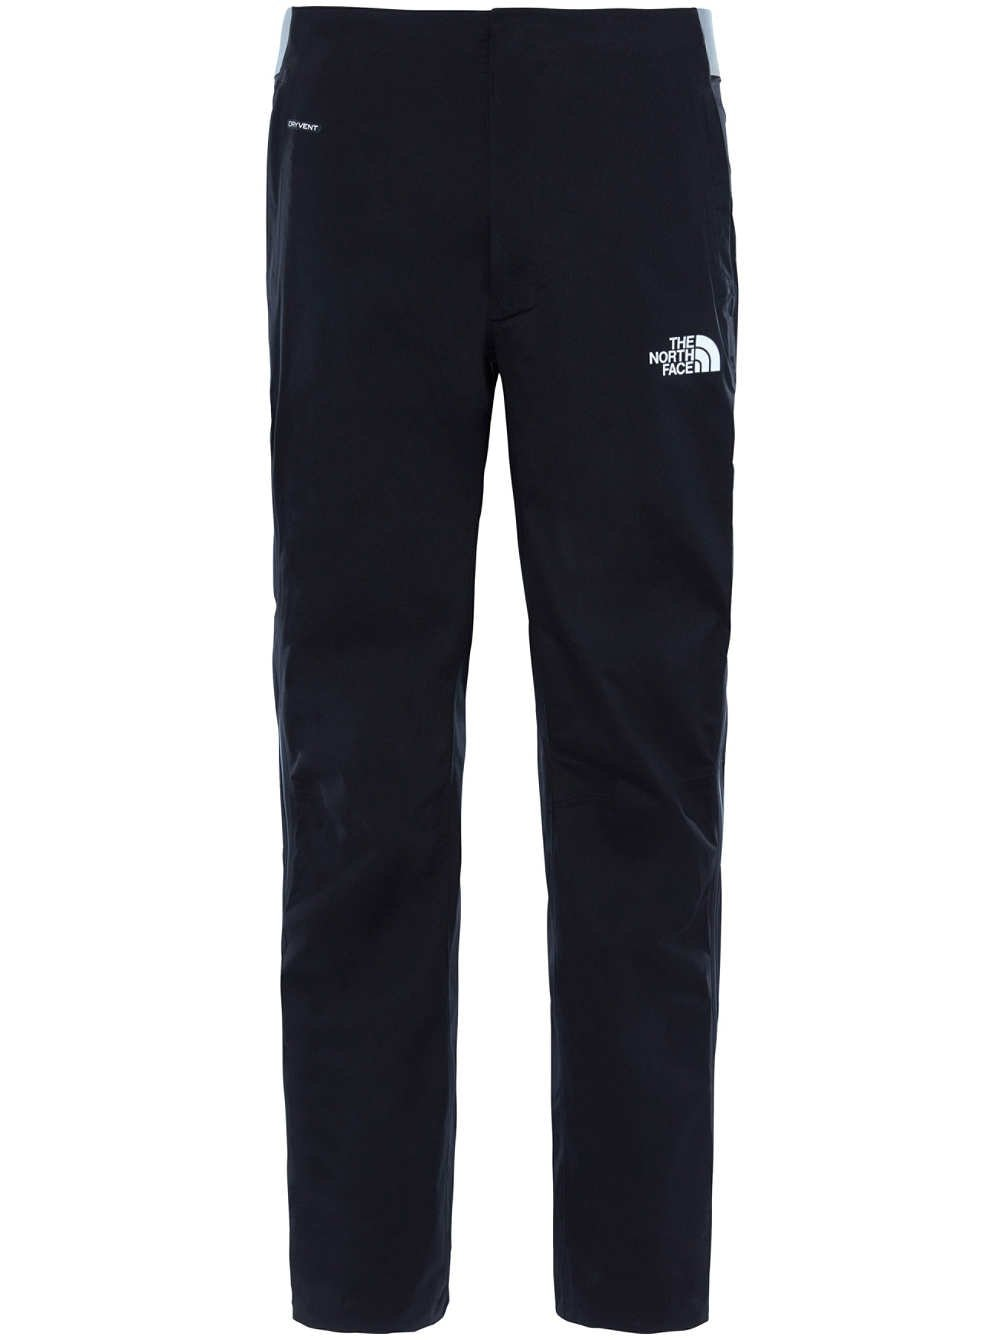 THE NORTH FACE 3bvs Lange Hose, Herren